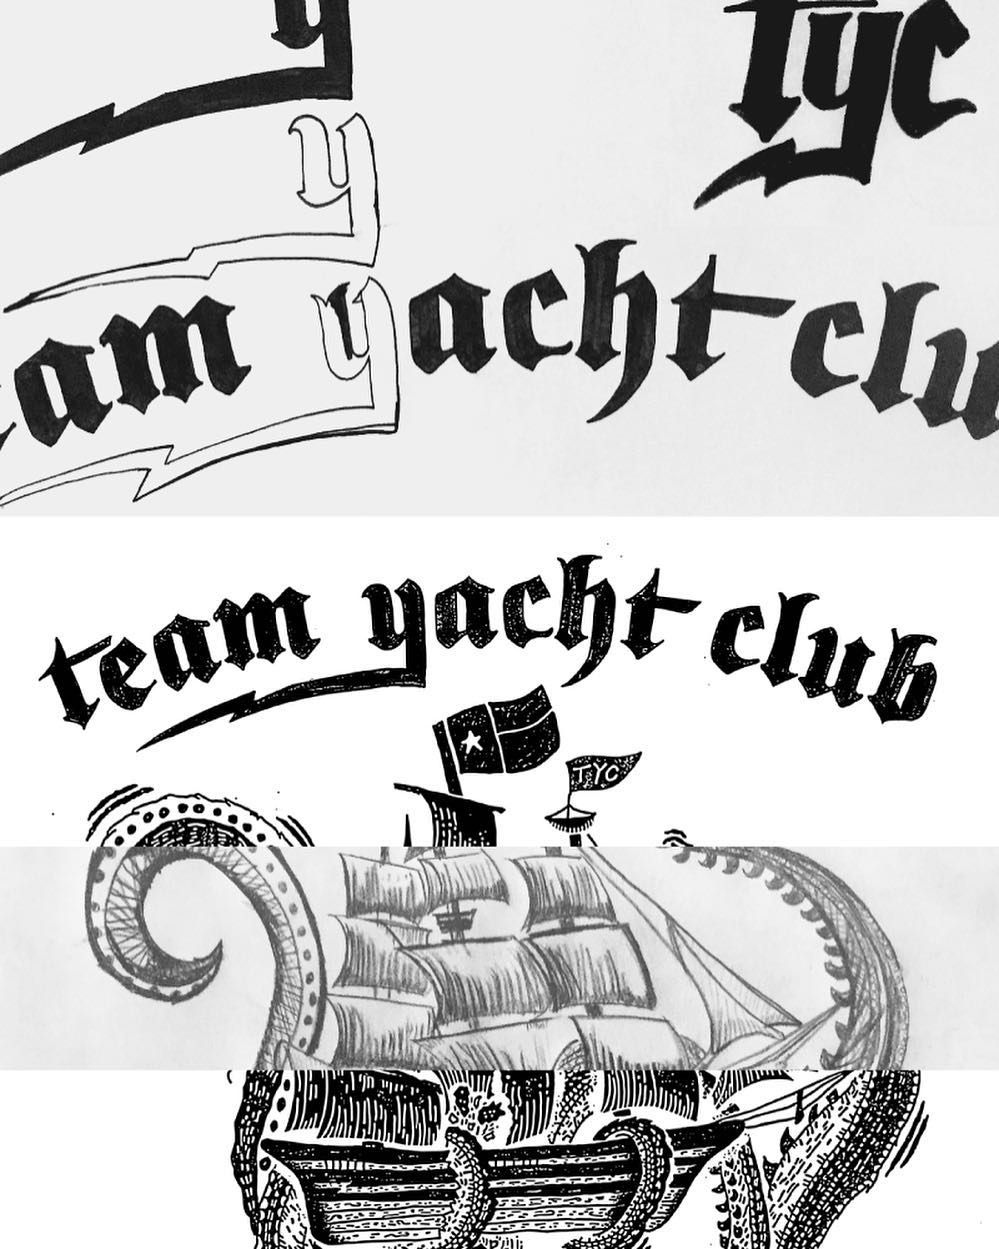 """Team Yacht Club"" blacklettering WIP by @mattthompson of @sturdymfgco for @teamyachtclub. Matt takes us through his process at www.lovegoodtype.com. See more progress shots and the finished piece at the link in bio.  #StrengthInLetters  #Goodtype by goodtype"